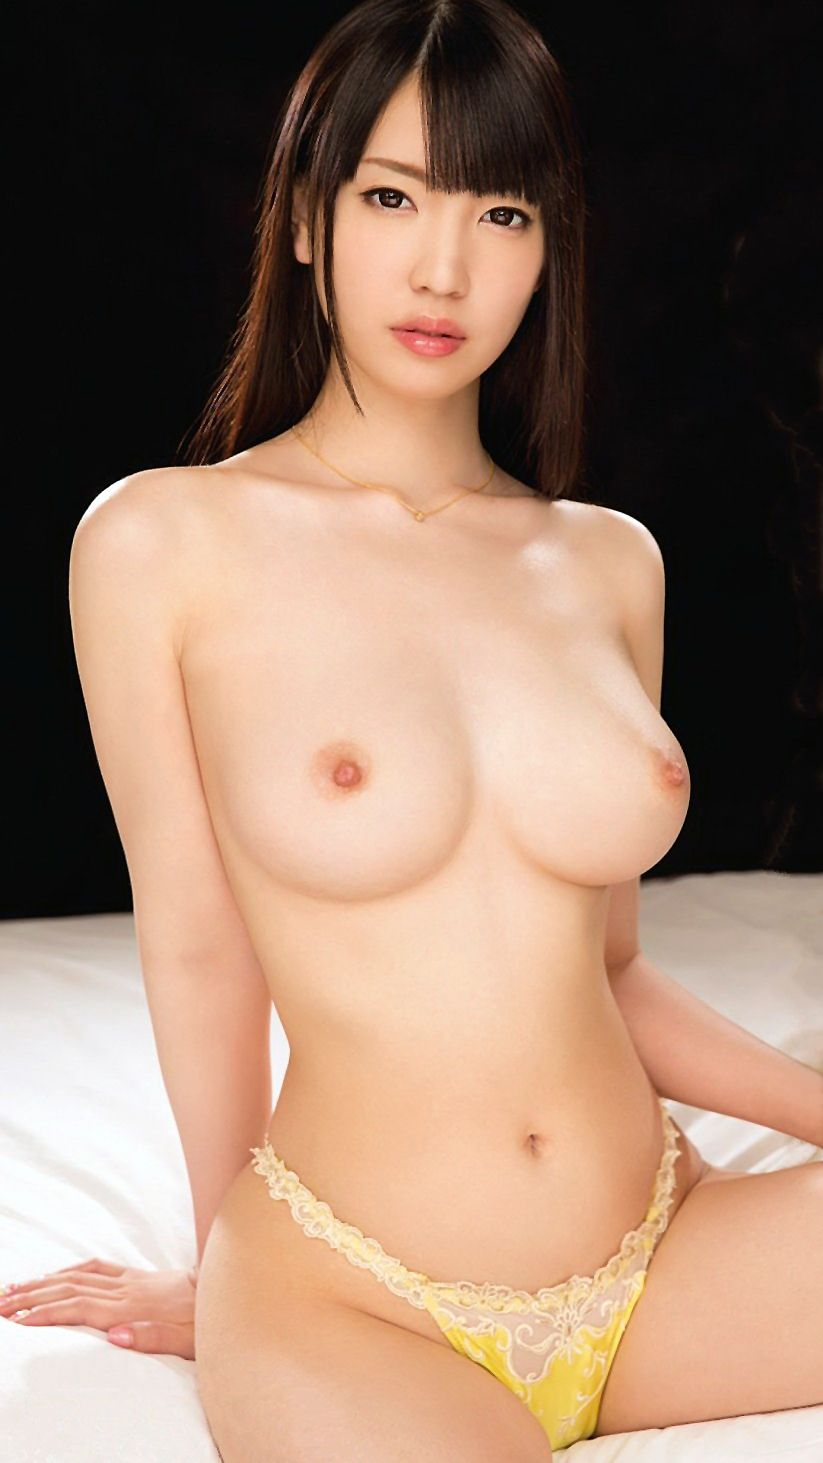 Asian Girls With Big Tits Porn - 29 best Asian images on Pinterest | Asian beauty, Beautiful women and Asia